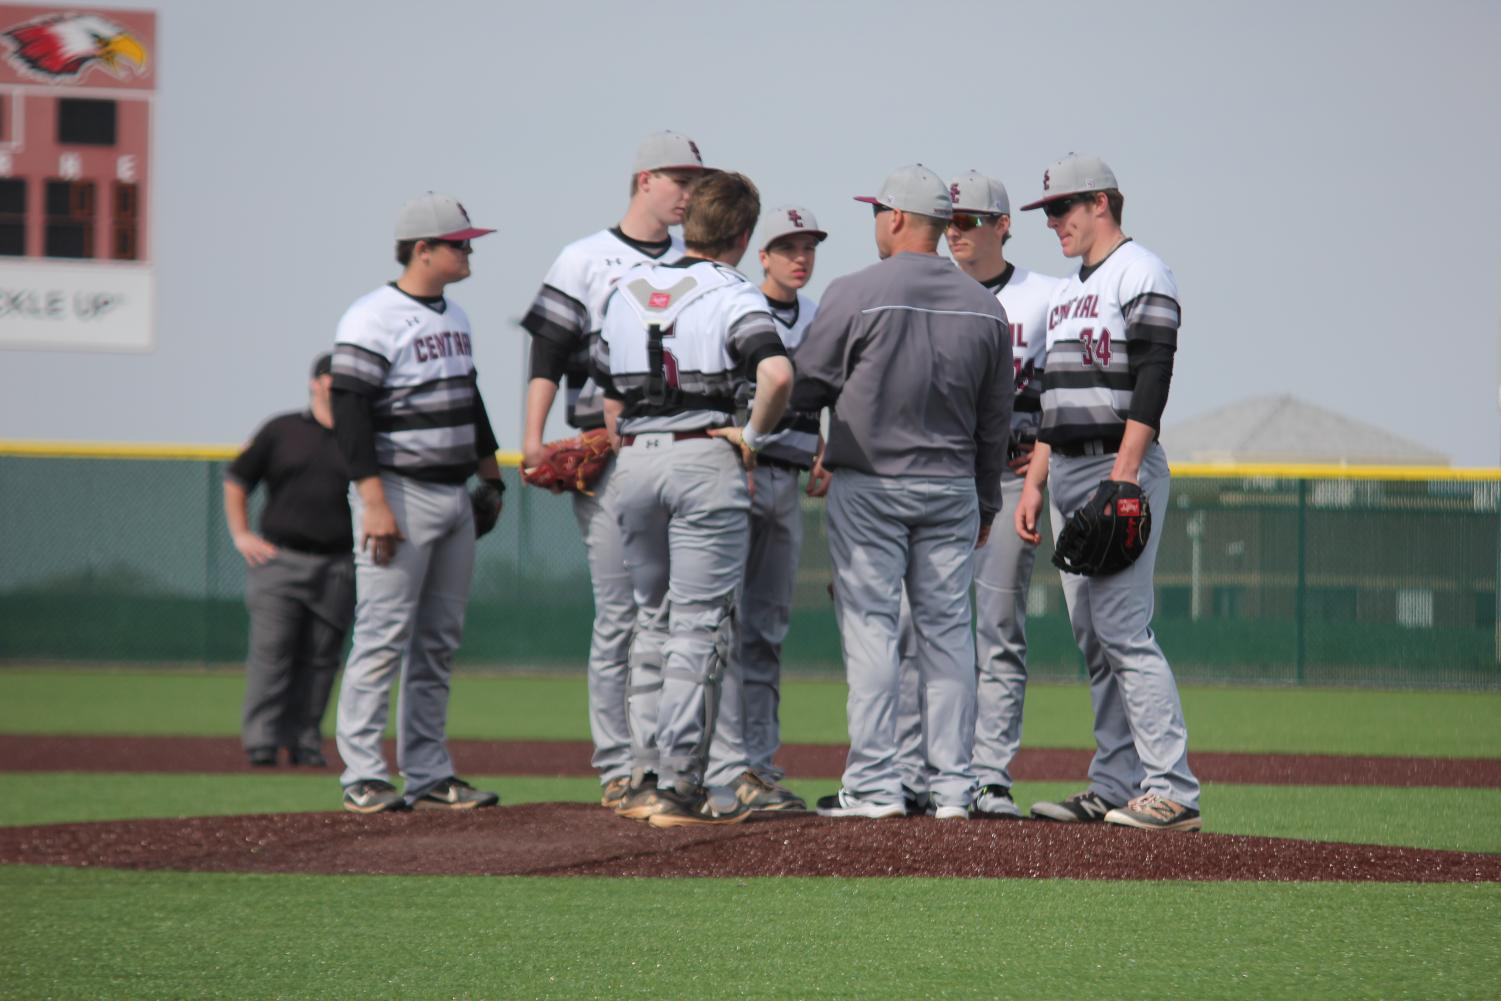 Infielders huddle around pitcher Ethan Speer